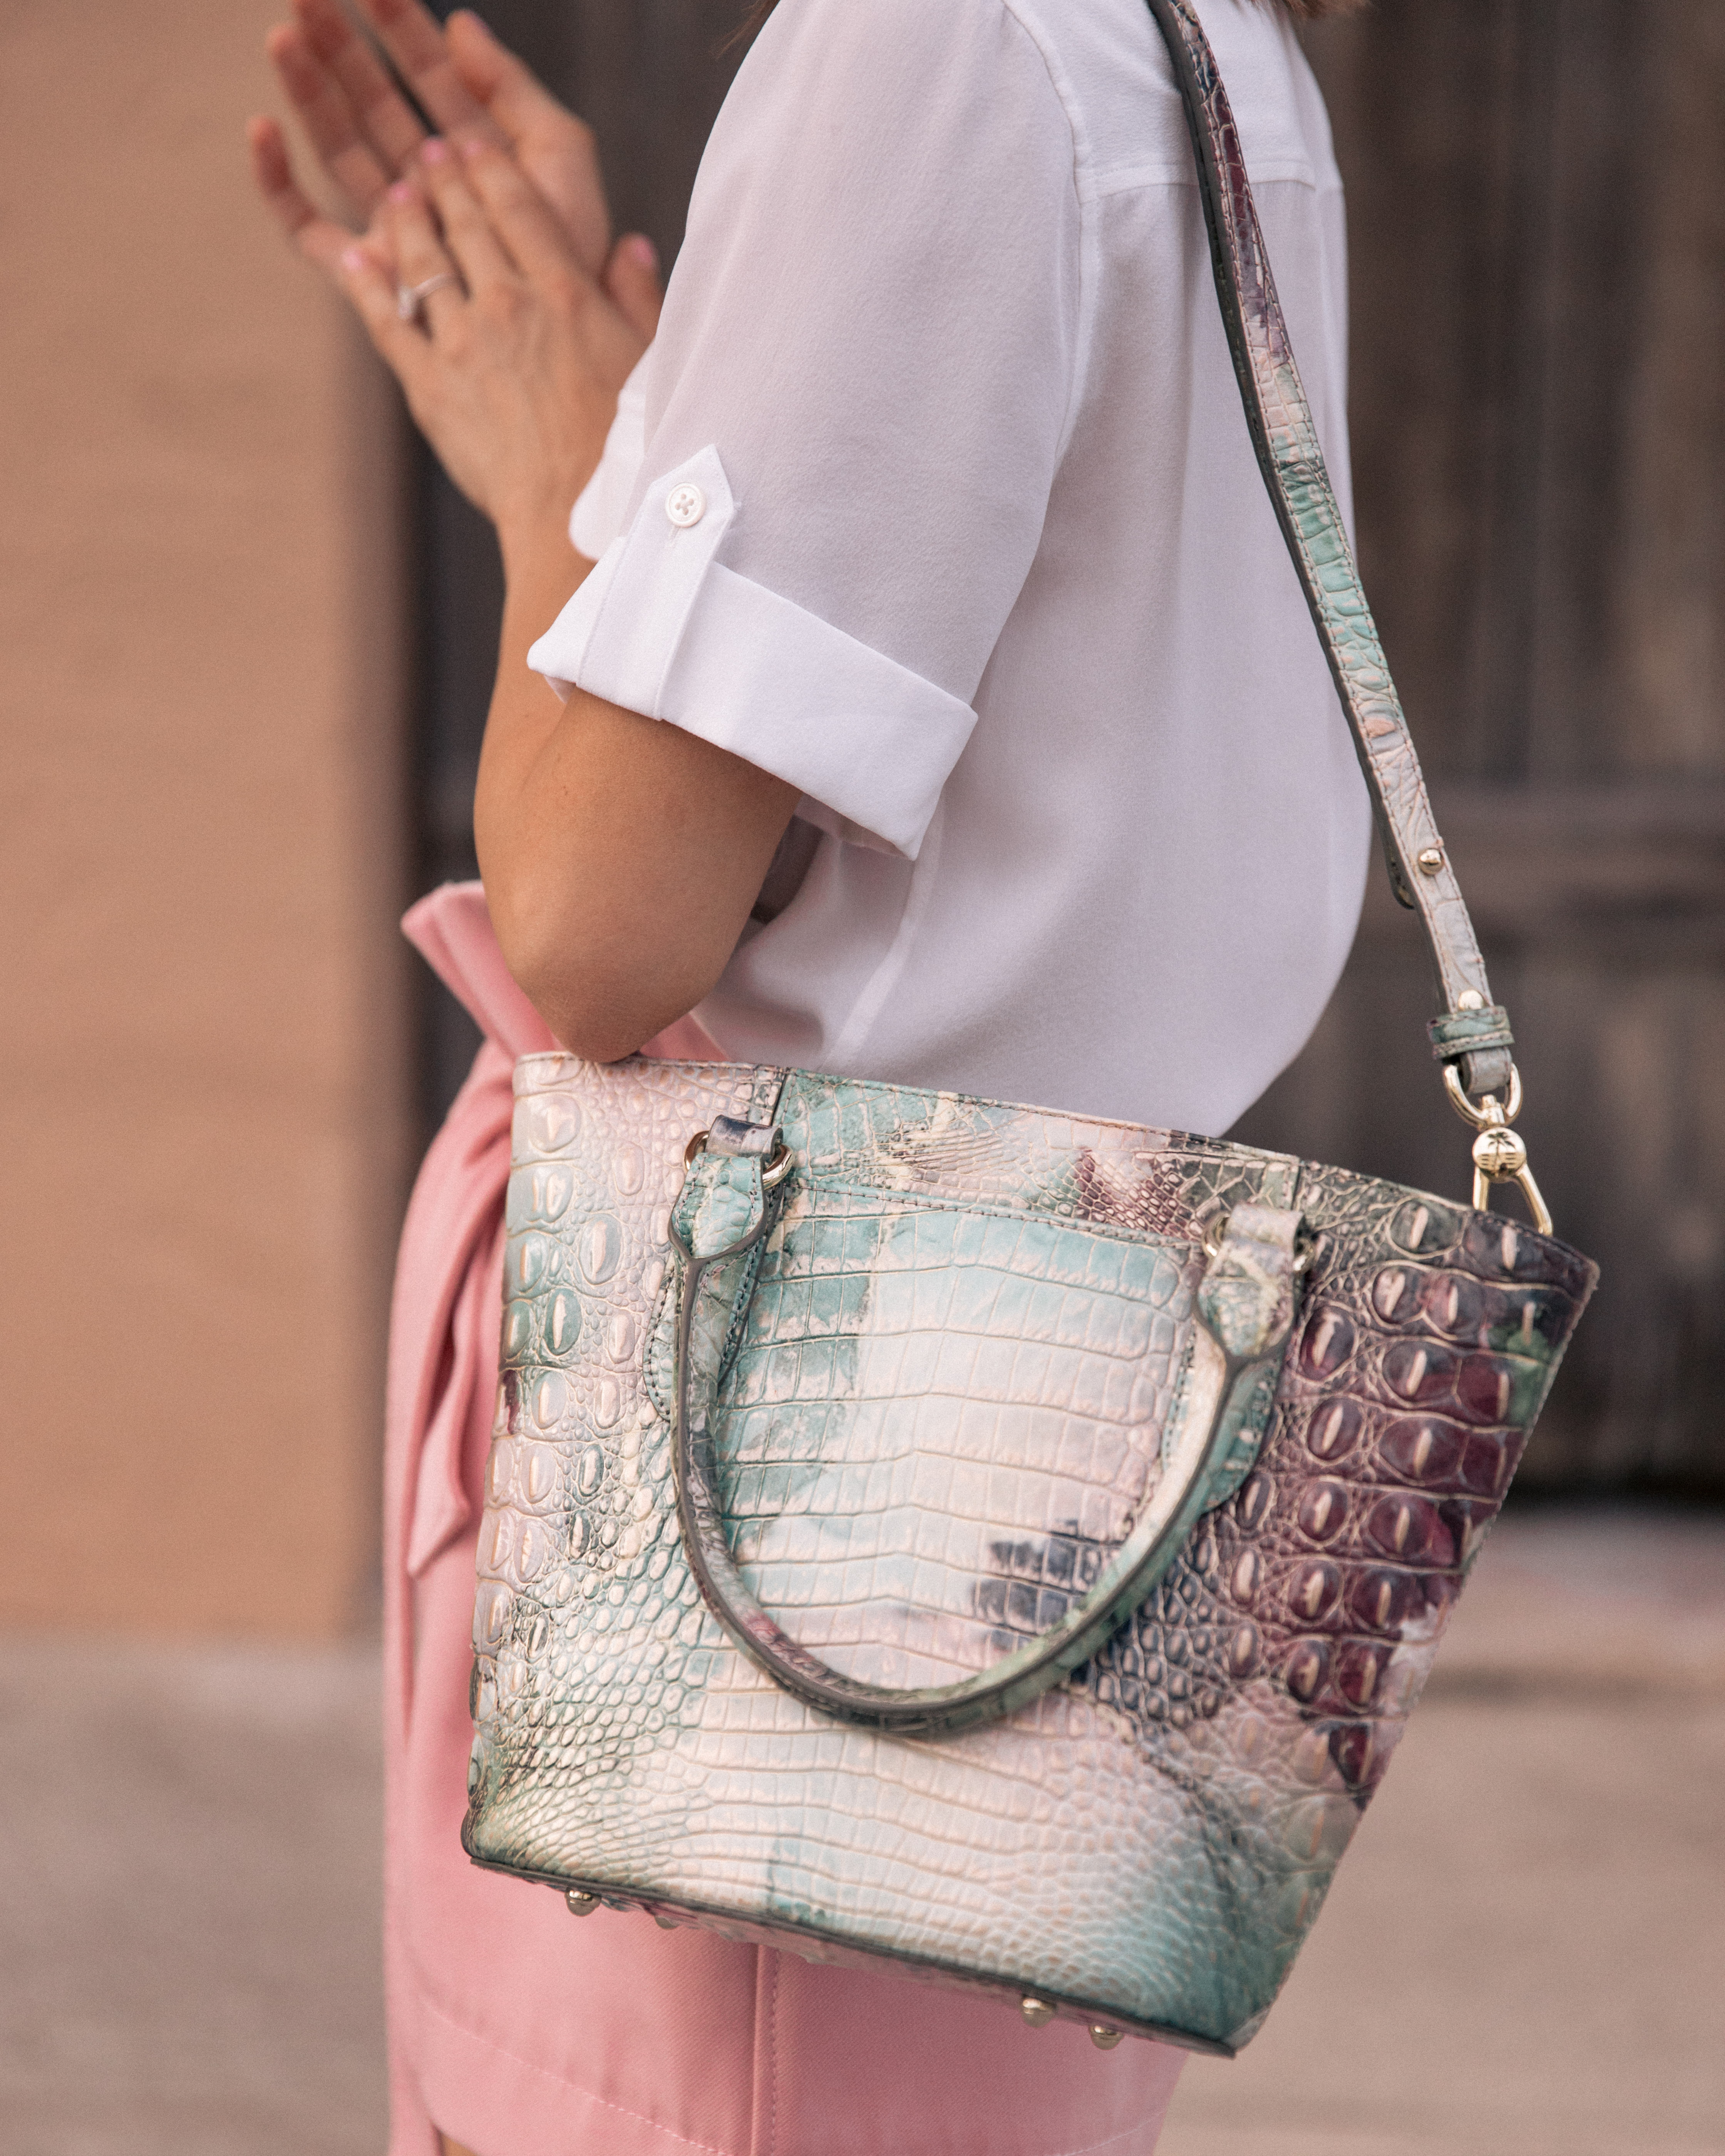 Blogger Stephanie Hill from The Style Bungalow featuring her Most Used Handbag Brand of 2019